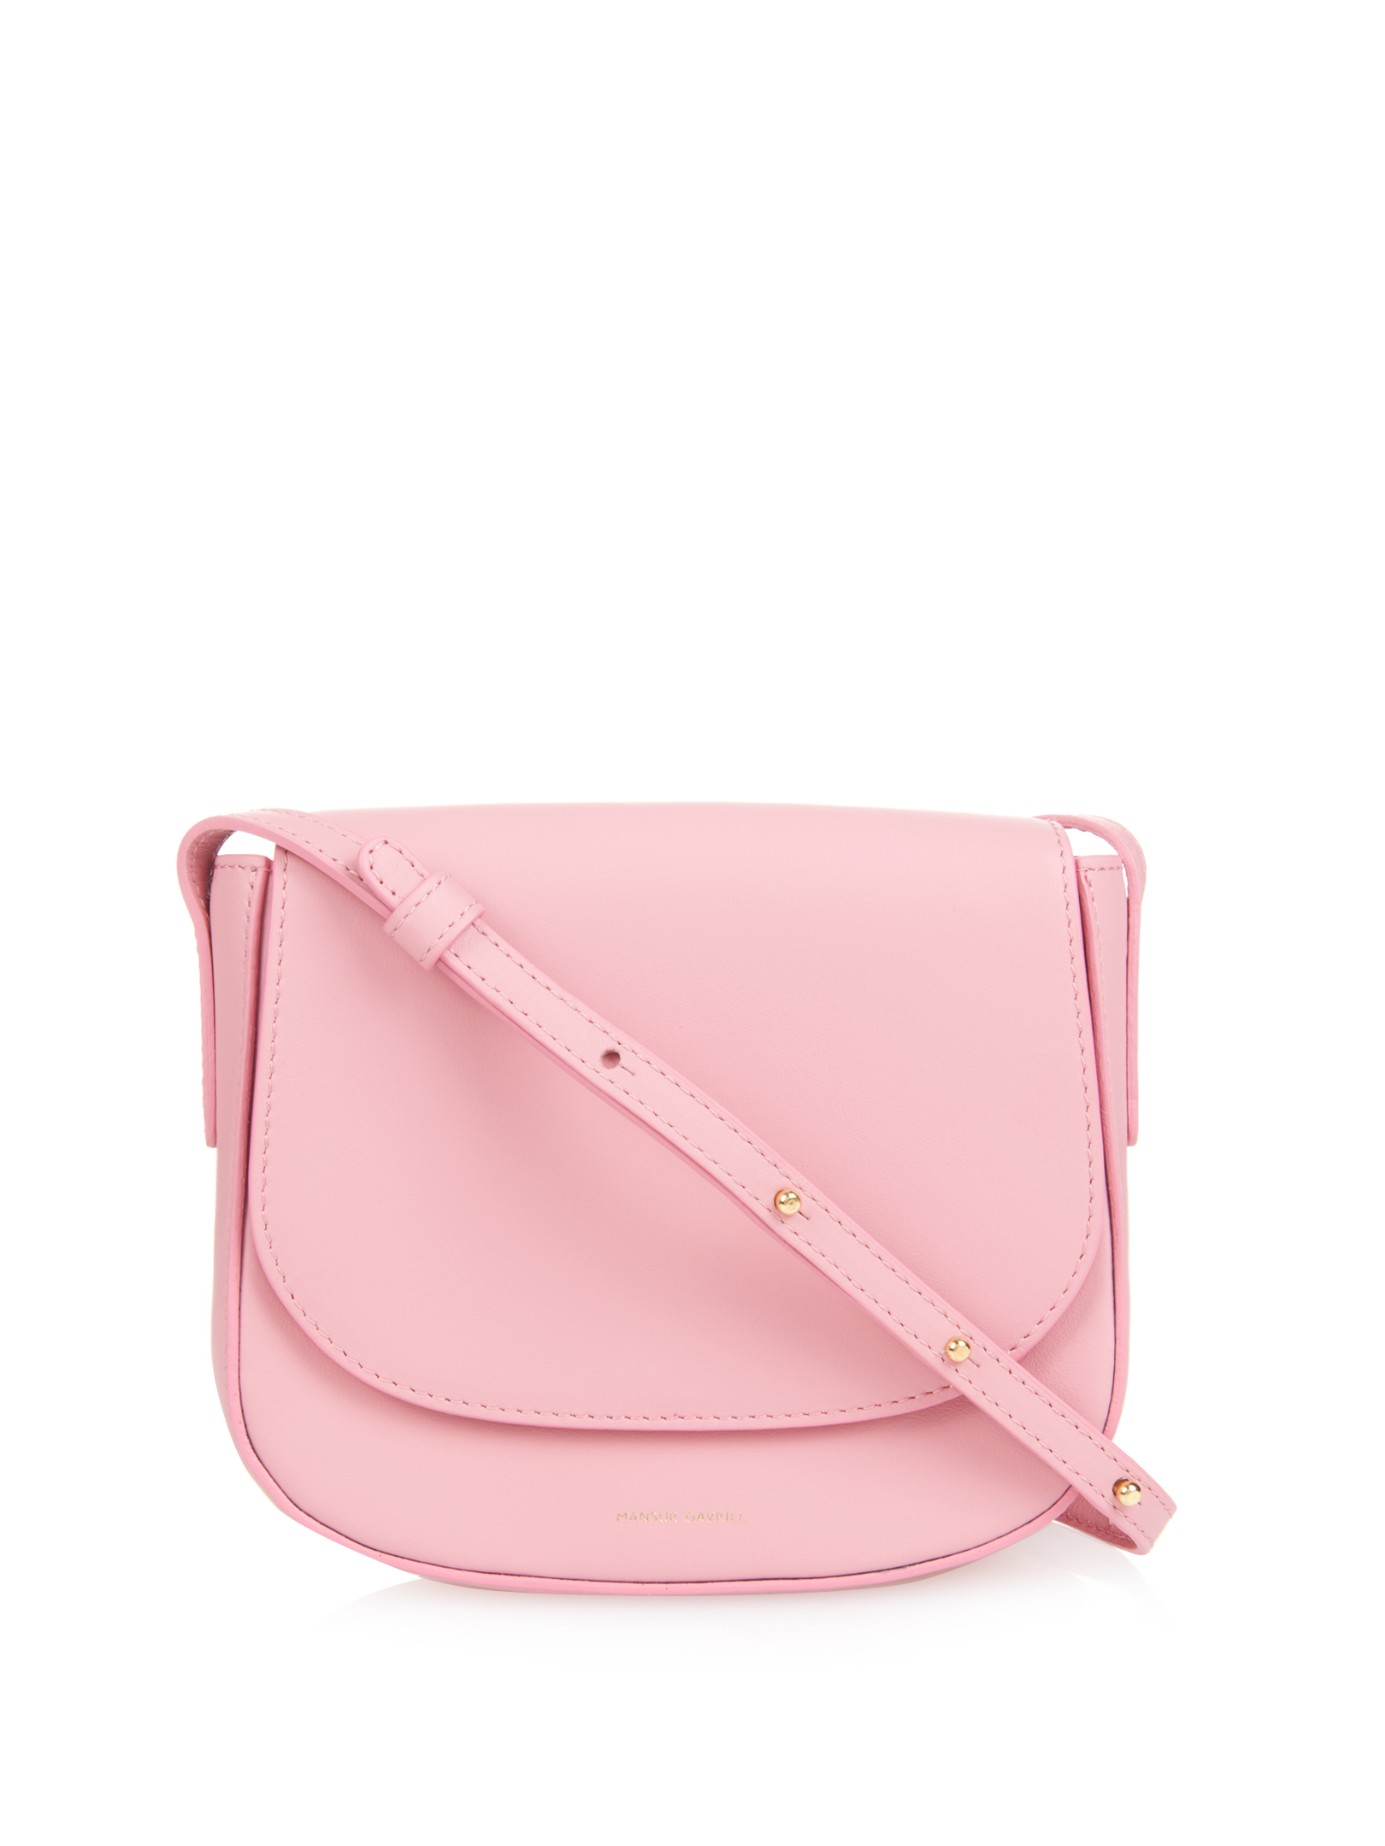 Mansur Gavriel Mini Calf-leather Cross-body Bag in Pink - Lyst f91f16ec5f61